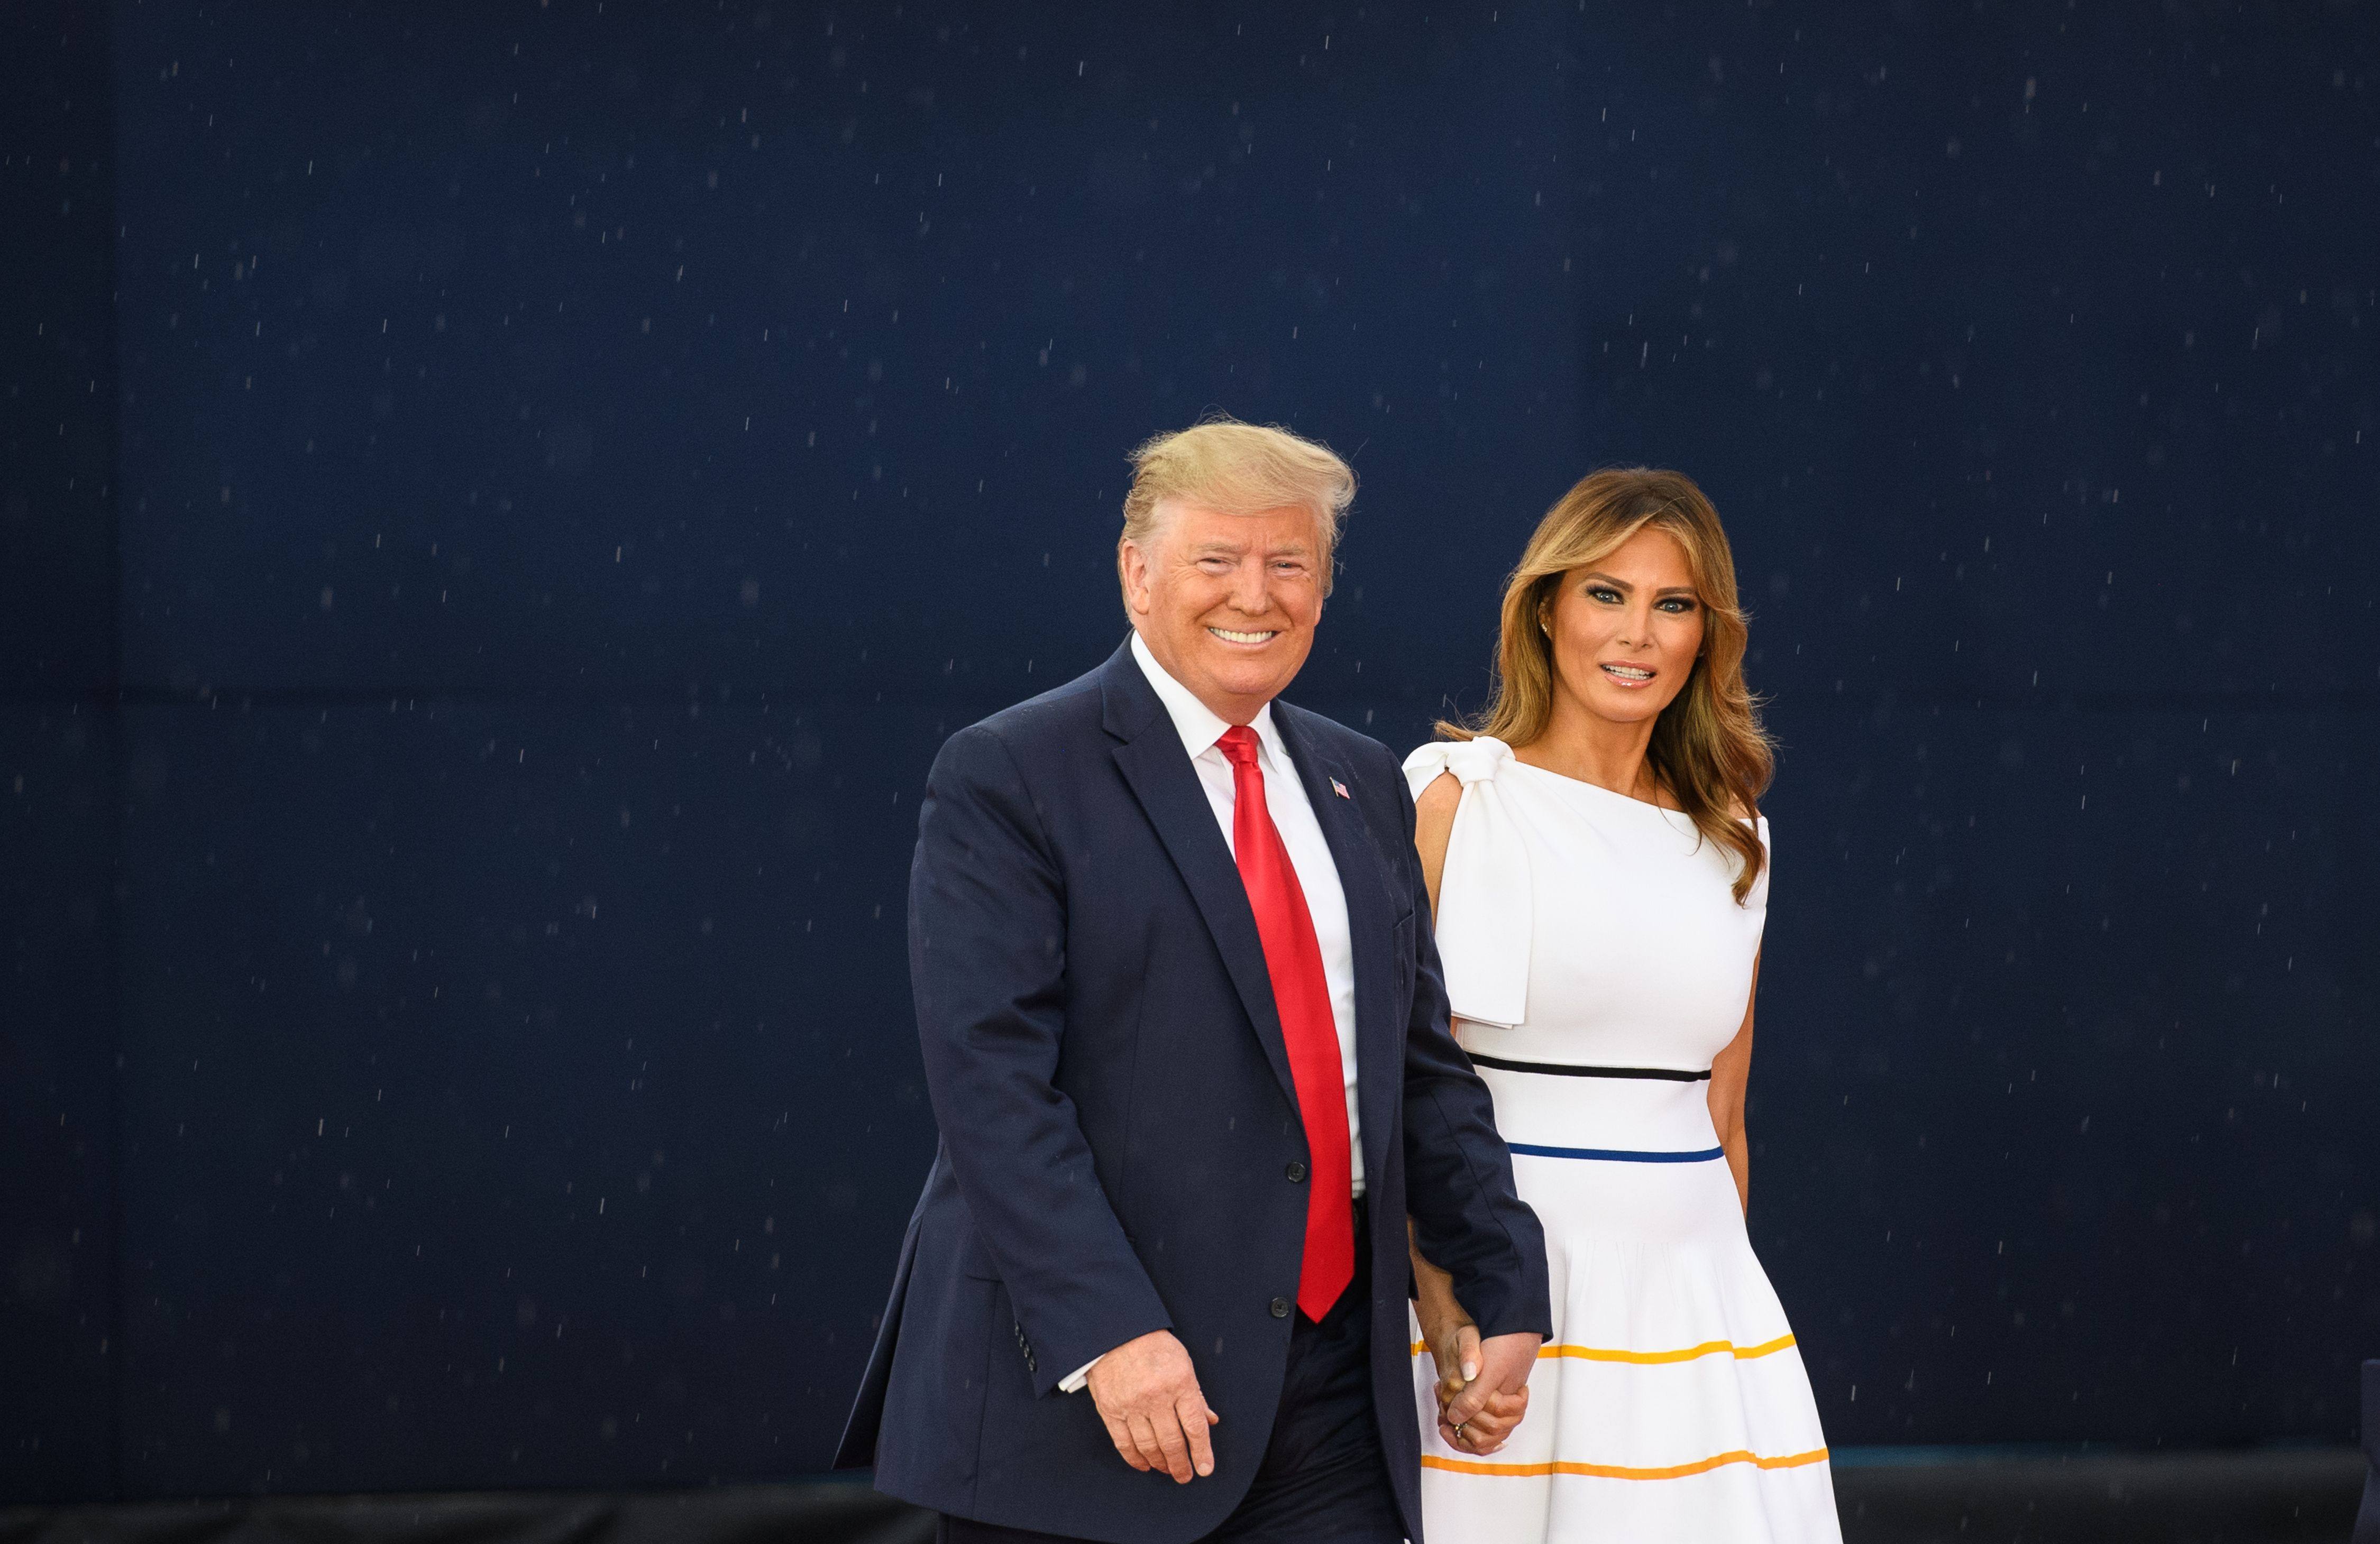 """US President Donald Trump and First Lady Melania Trump arrive for the """"Salute to America"""" Fourth of July event at the Lincoln Memorial in Washington, DC, July 4, 2019. (Photo by MANDEL NGAN / AFP)        (Photo credit should read MANDEL NGAN/AFP/Getty Images)"""